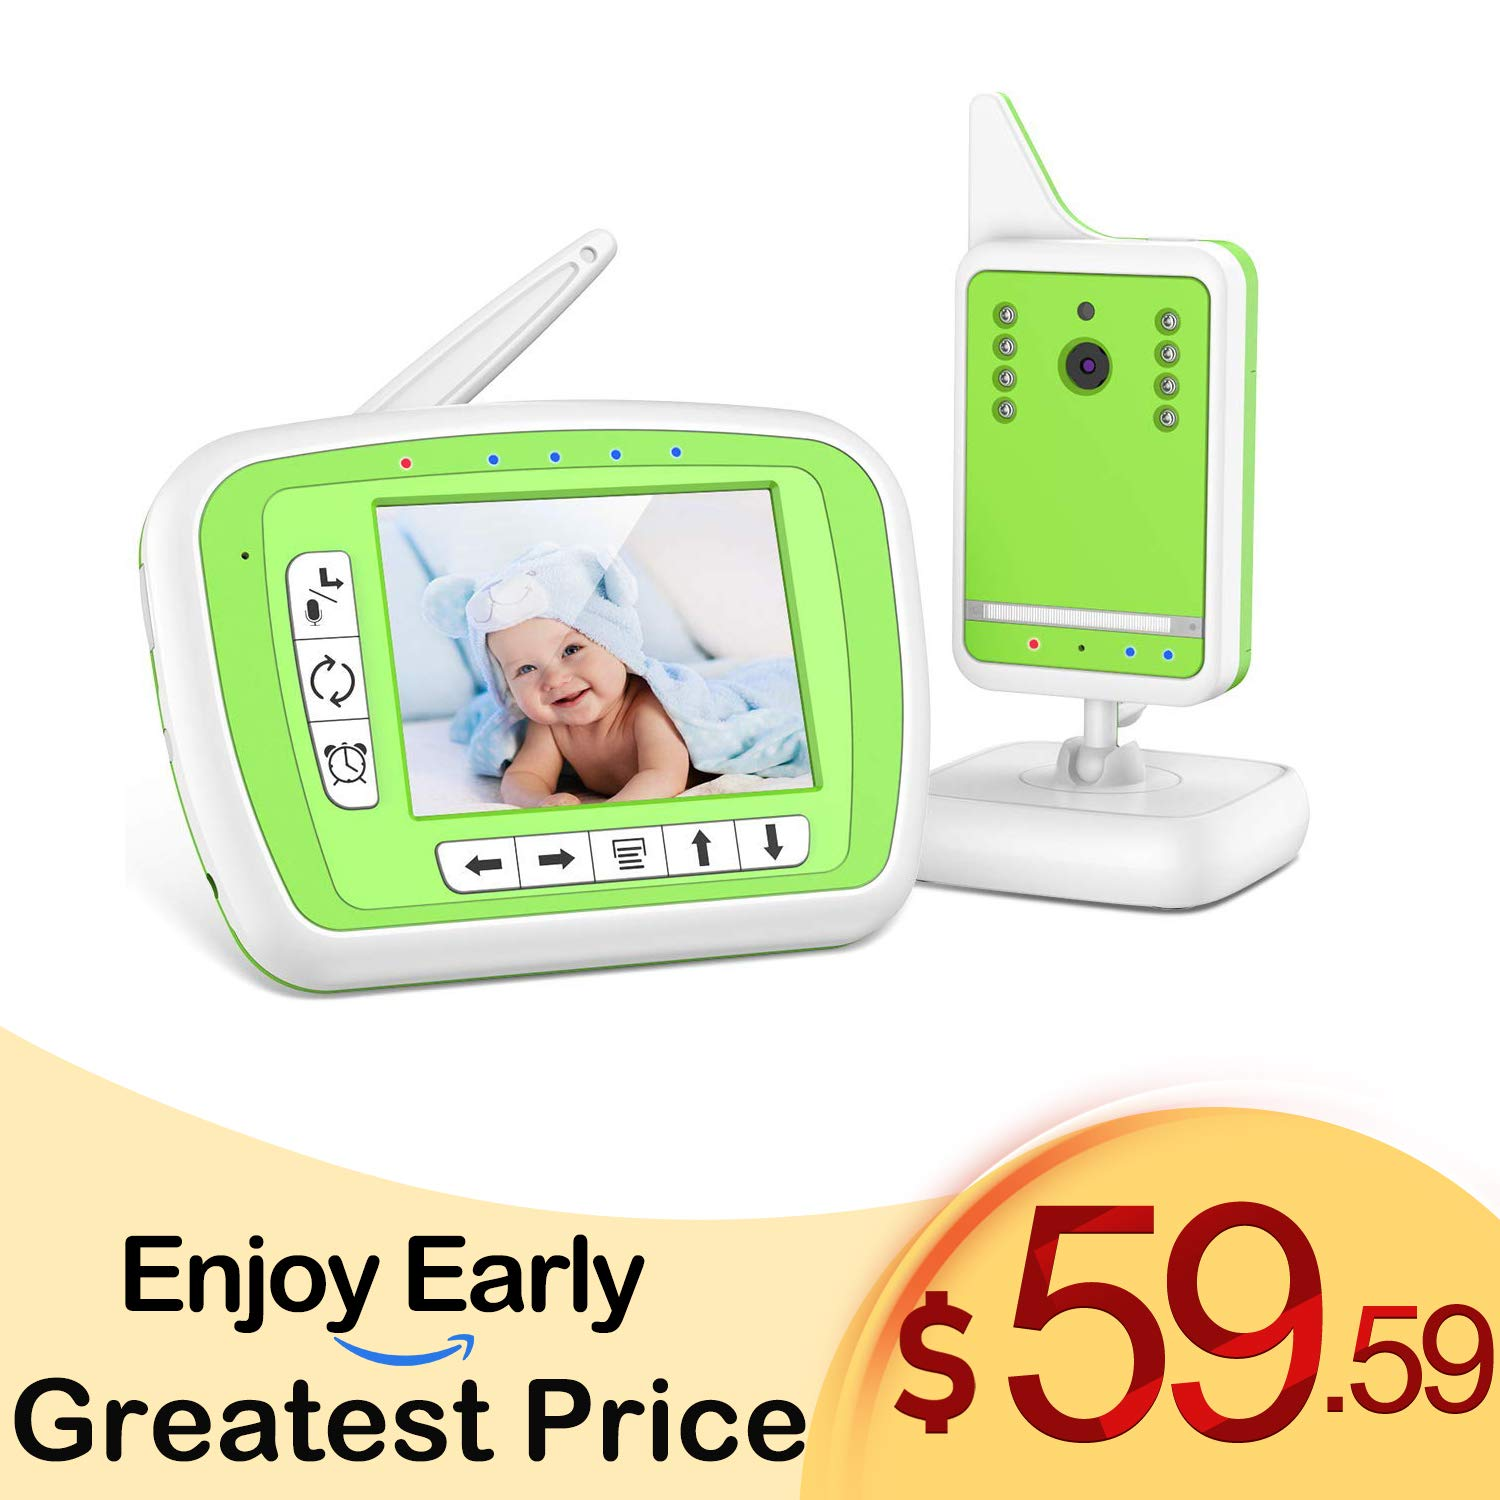 LOYLOV Video Baby Monitor with Digital Camera and Audio, 980ft Long Range 3.3 LCD Display, Support Multi-Camera, Auto Wake-up, Temperature Sensor, Infrared Night Vision, Lullabies